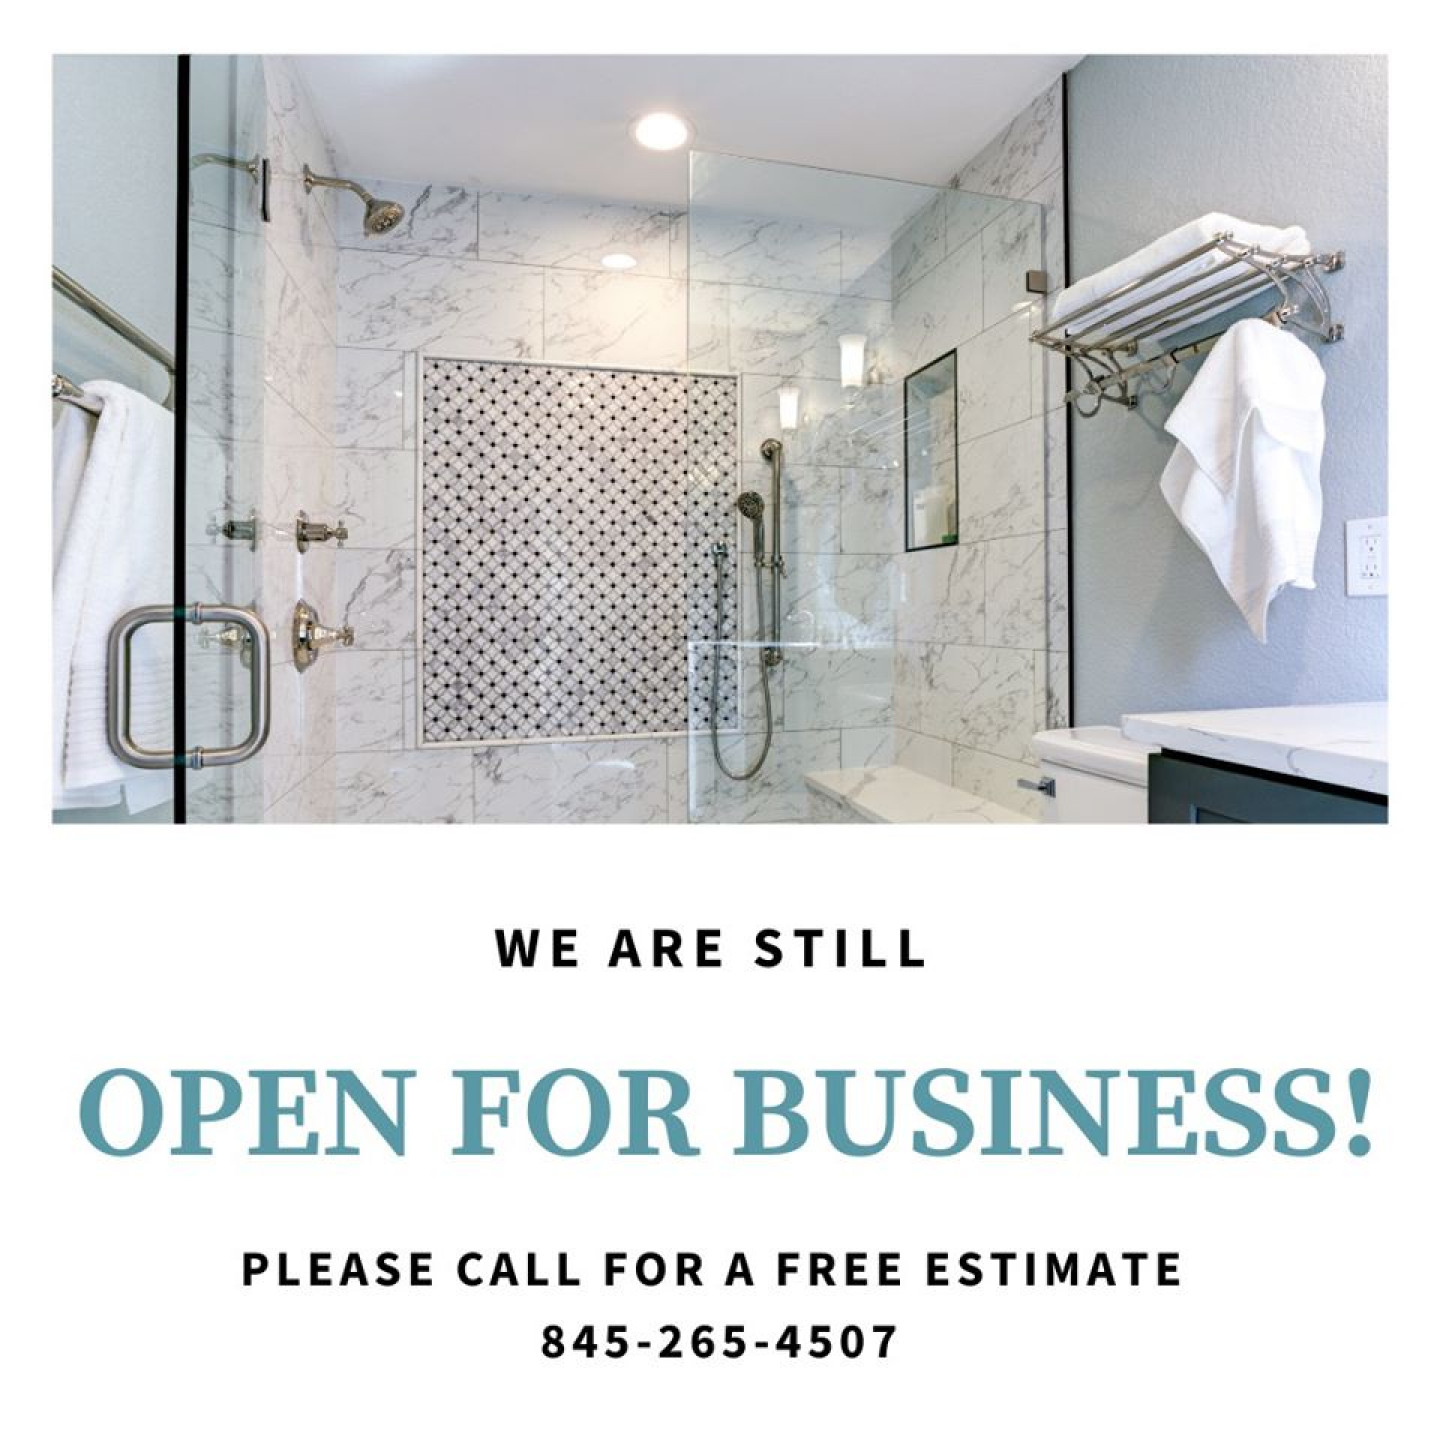 We are still open for business and open to the public while following guidelines. Please call us at 845-265-4507 ​for a FREE estimate.